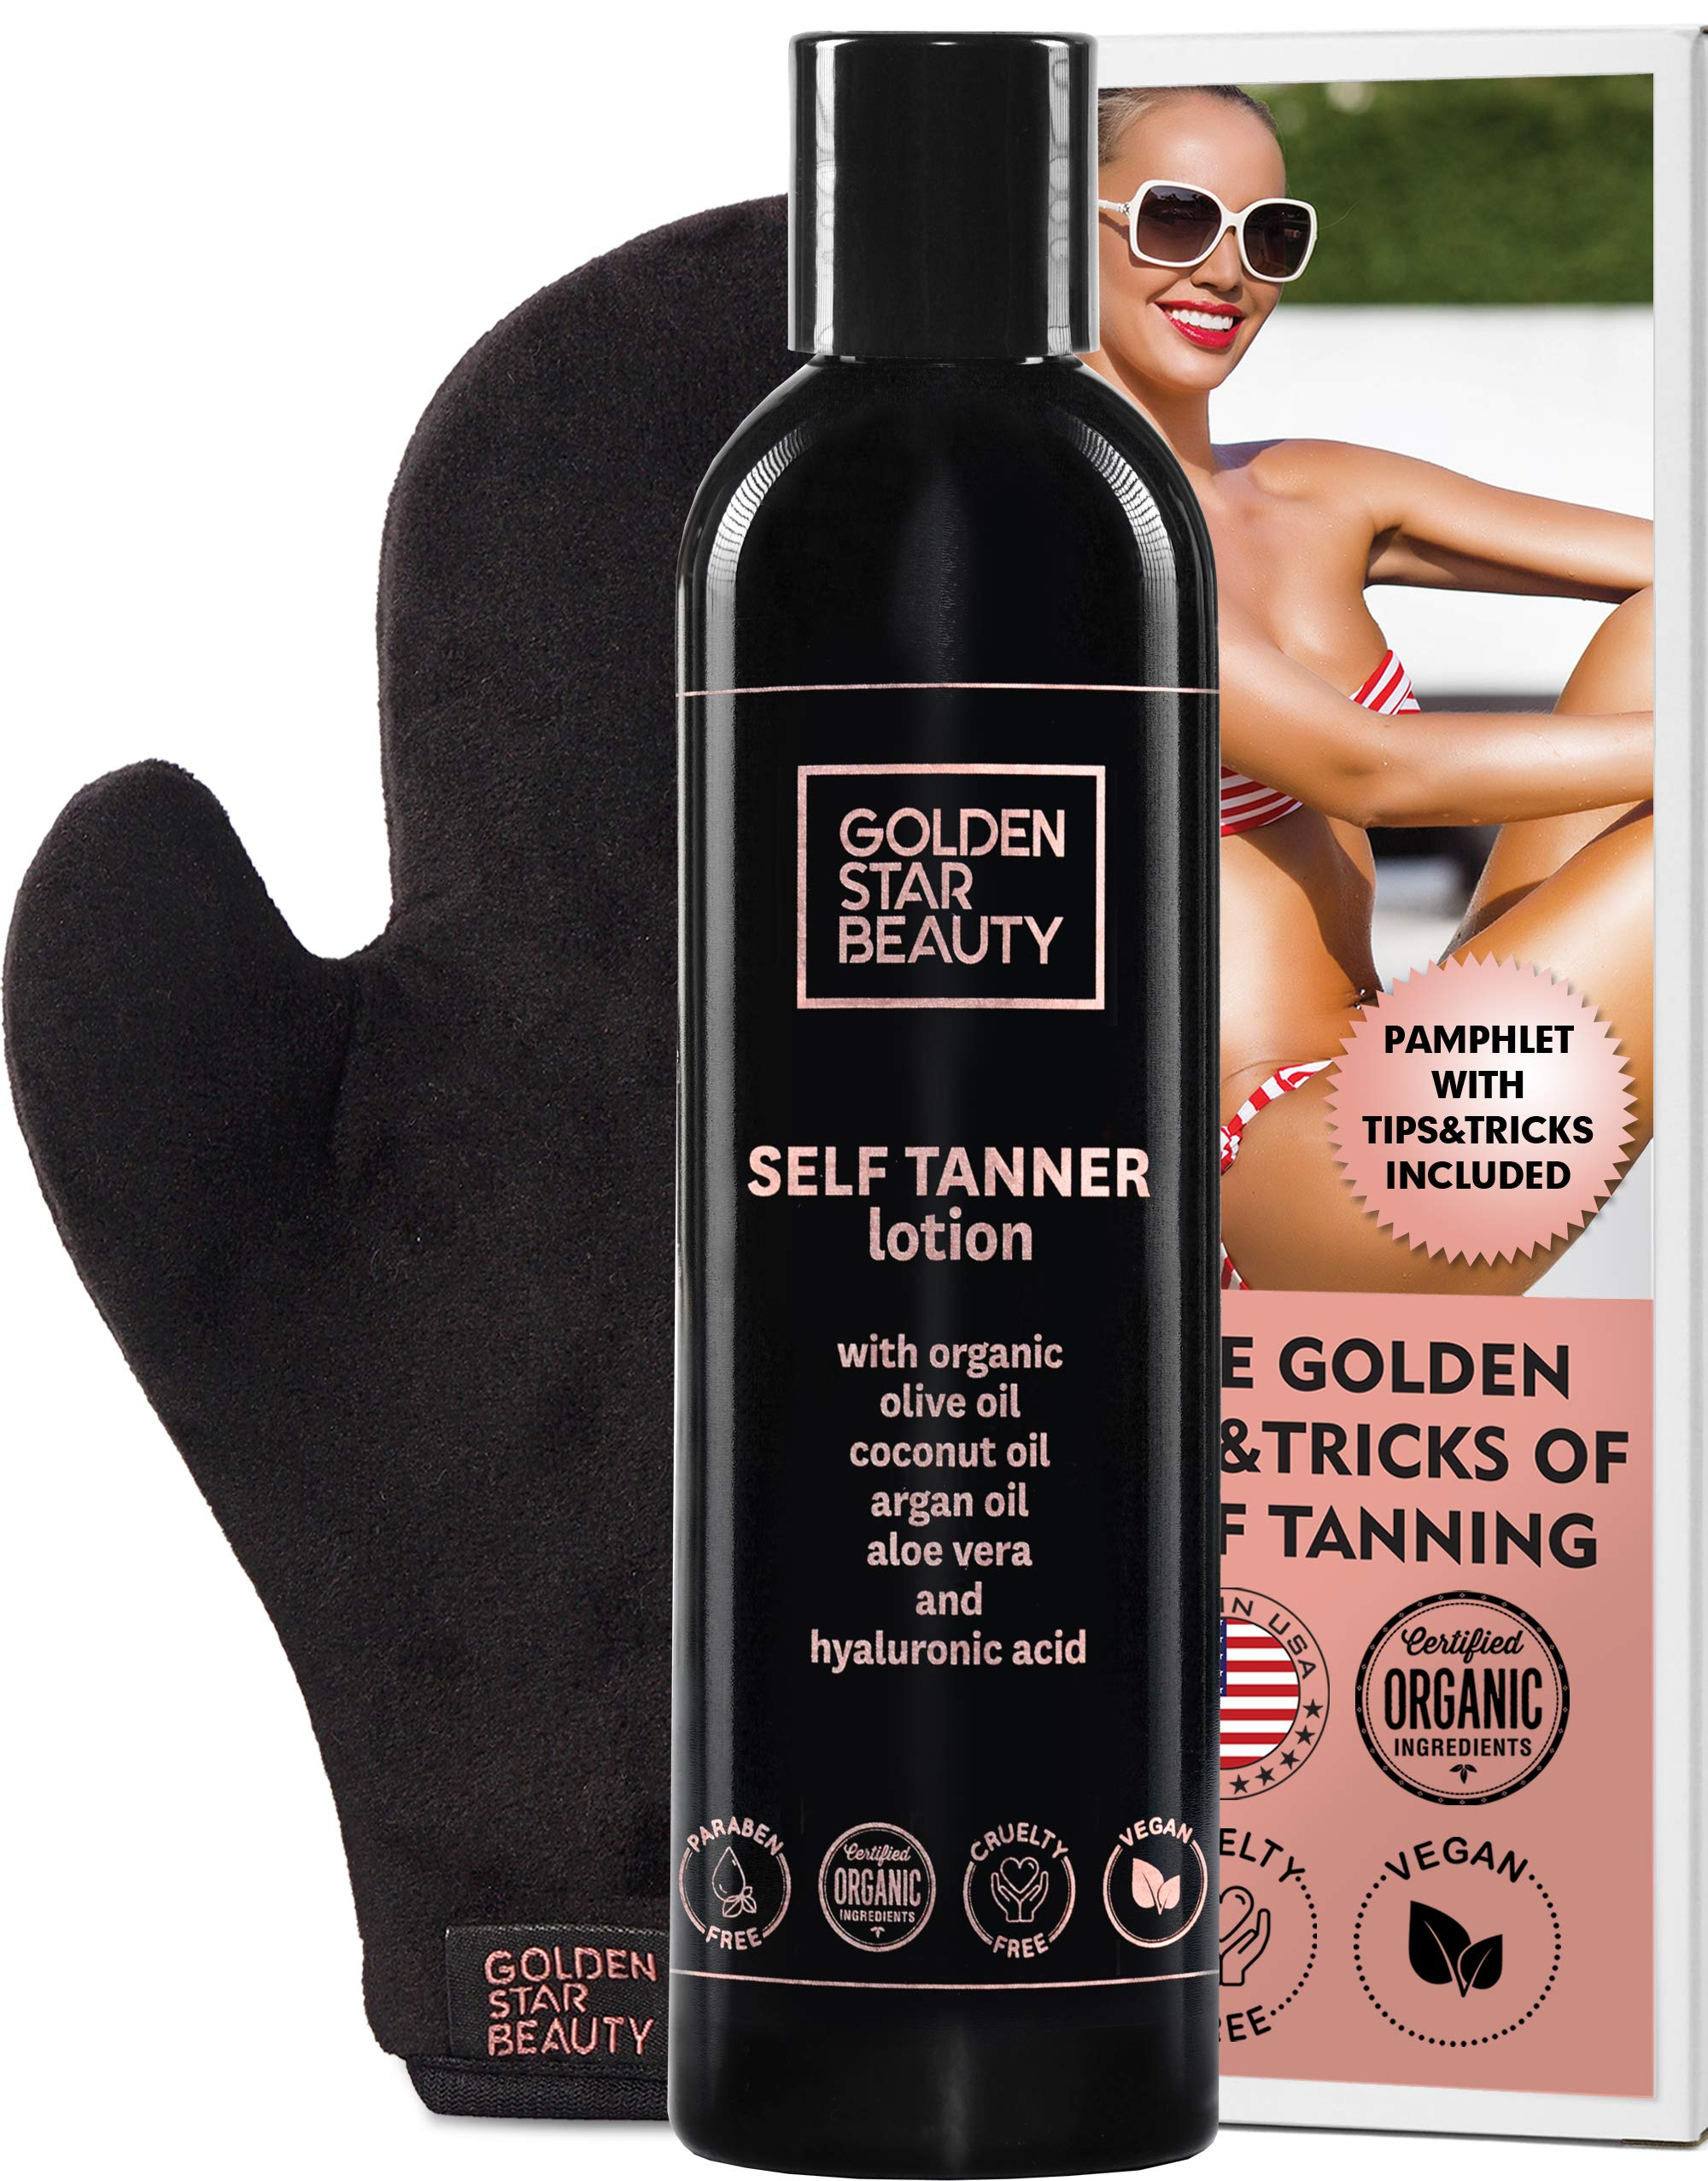 Self Tanner with Tanning Mitt - Sunless Tanning Lotion with Organic Oils Gradual Body Bronzer for Light or Medium Tan 8.0 fl.oz …